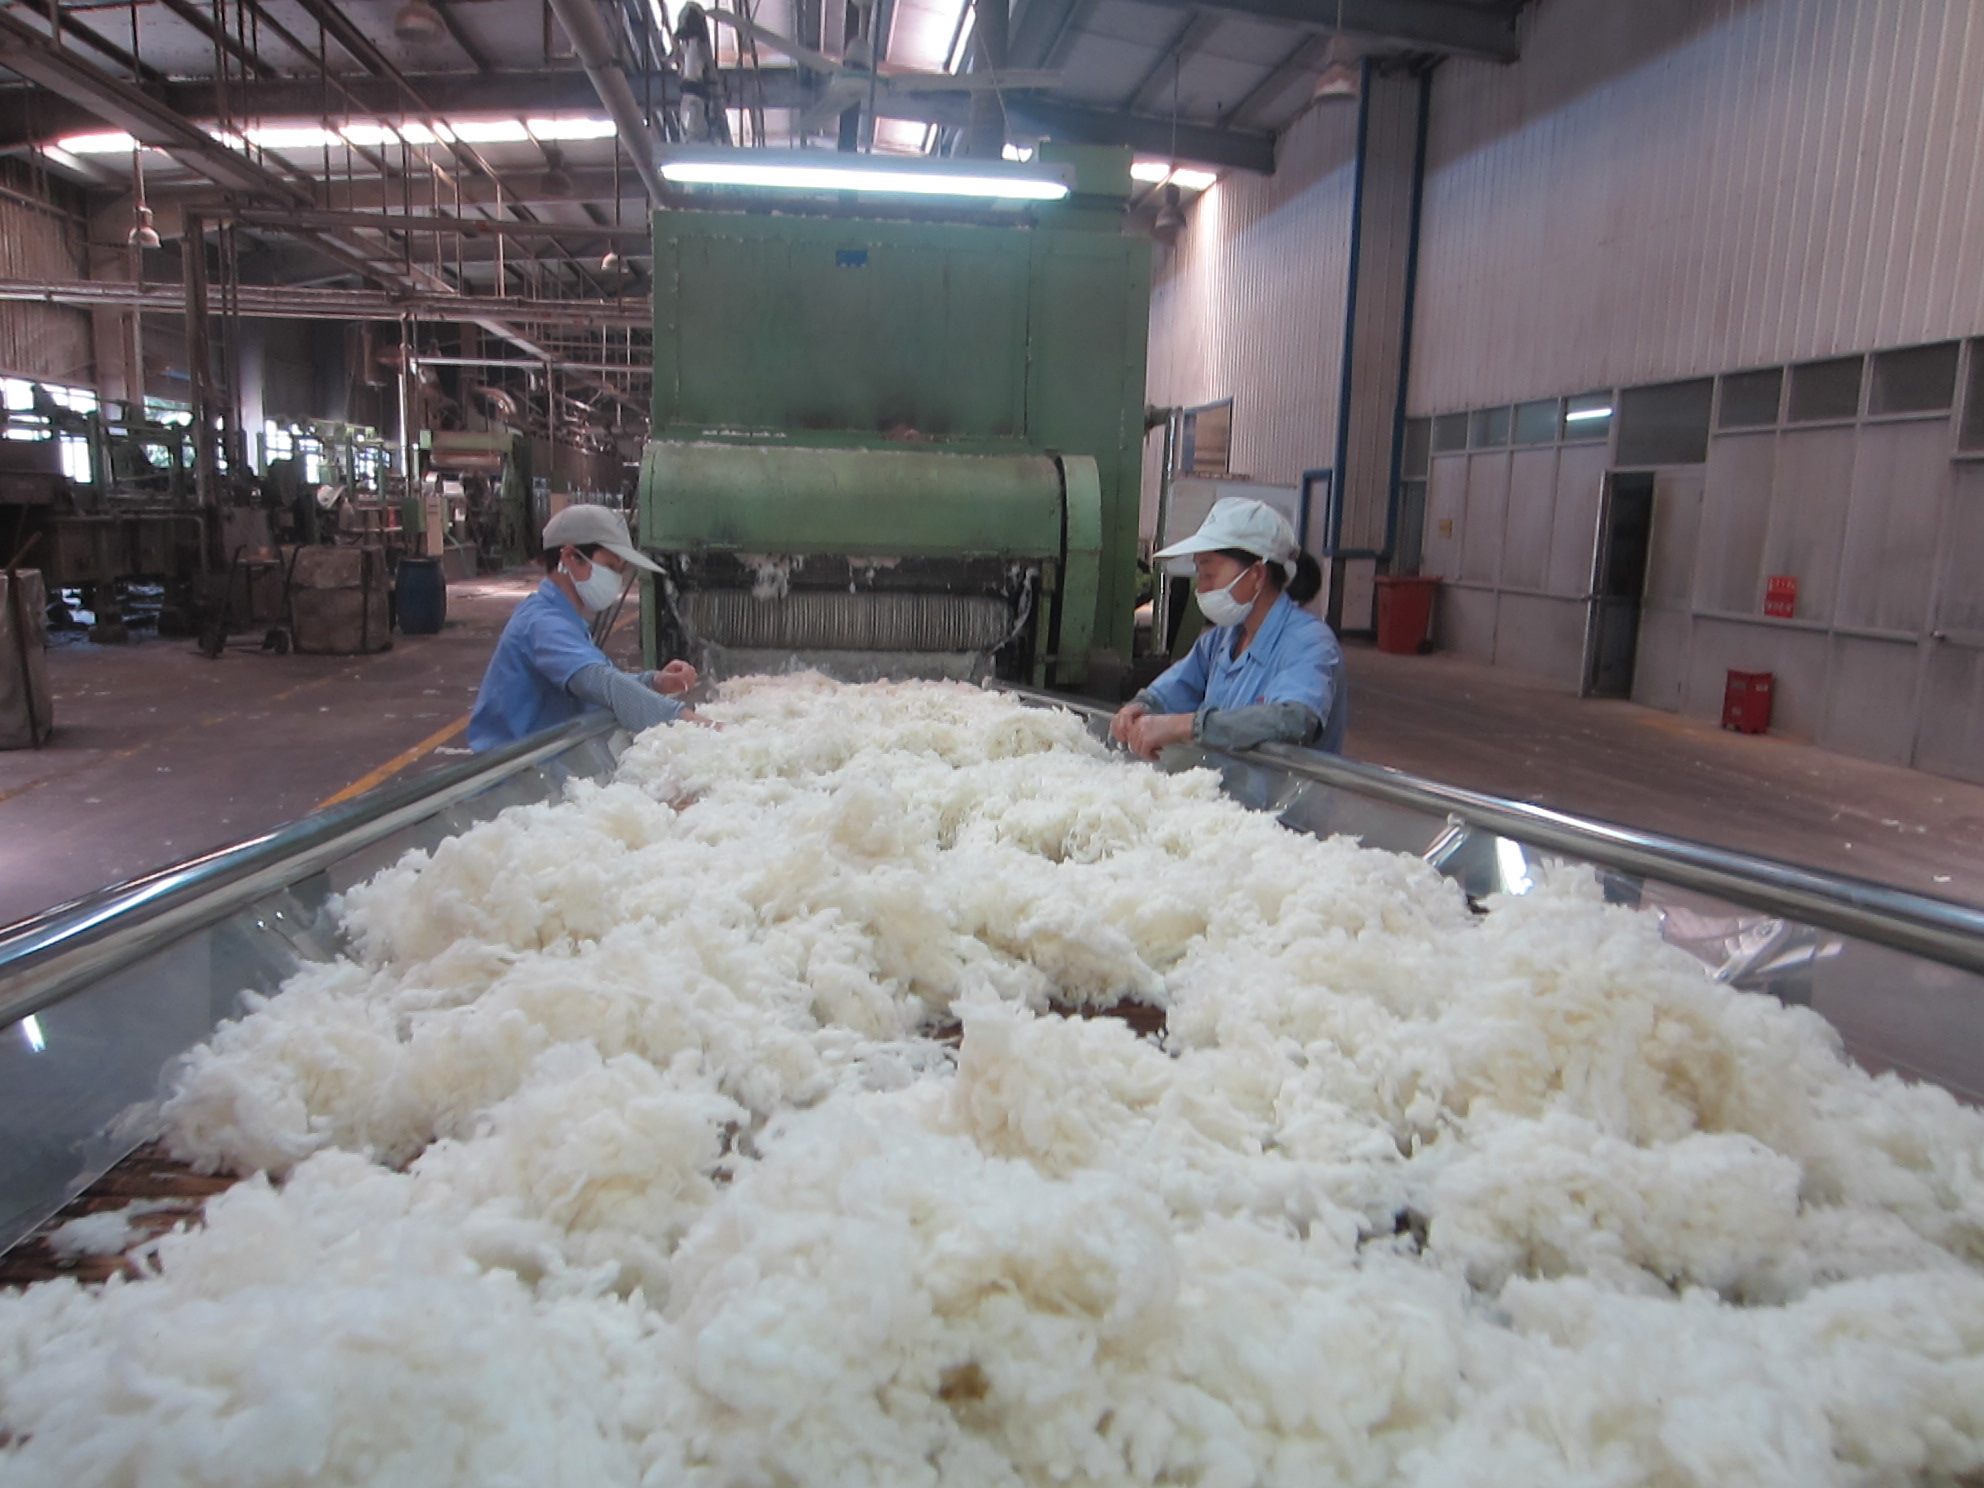 China lifts import quota on Australian wool by 5%